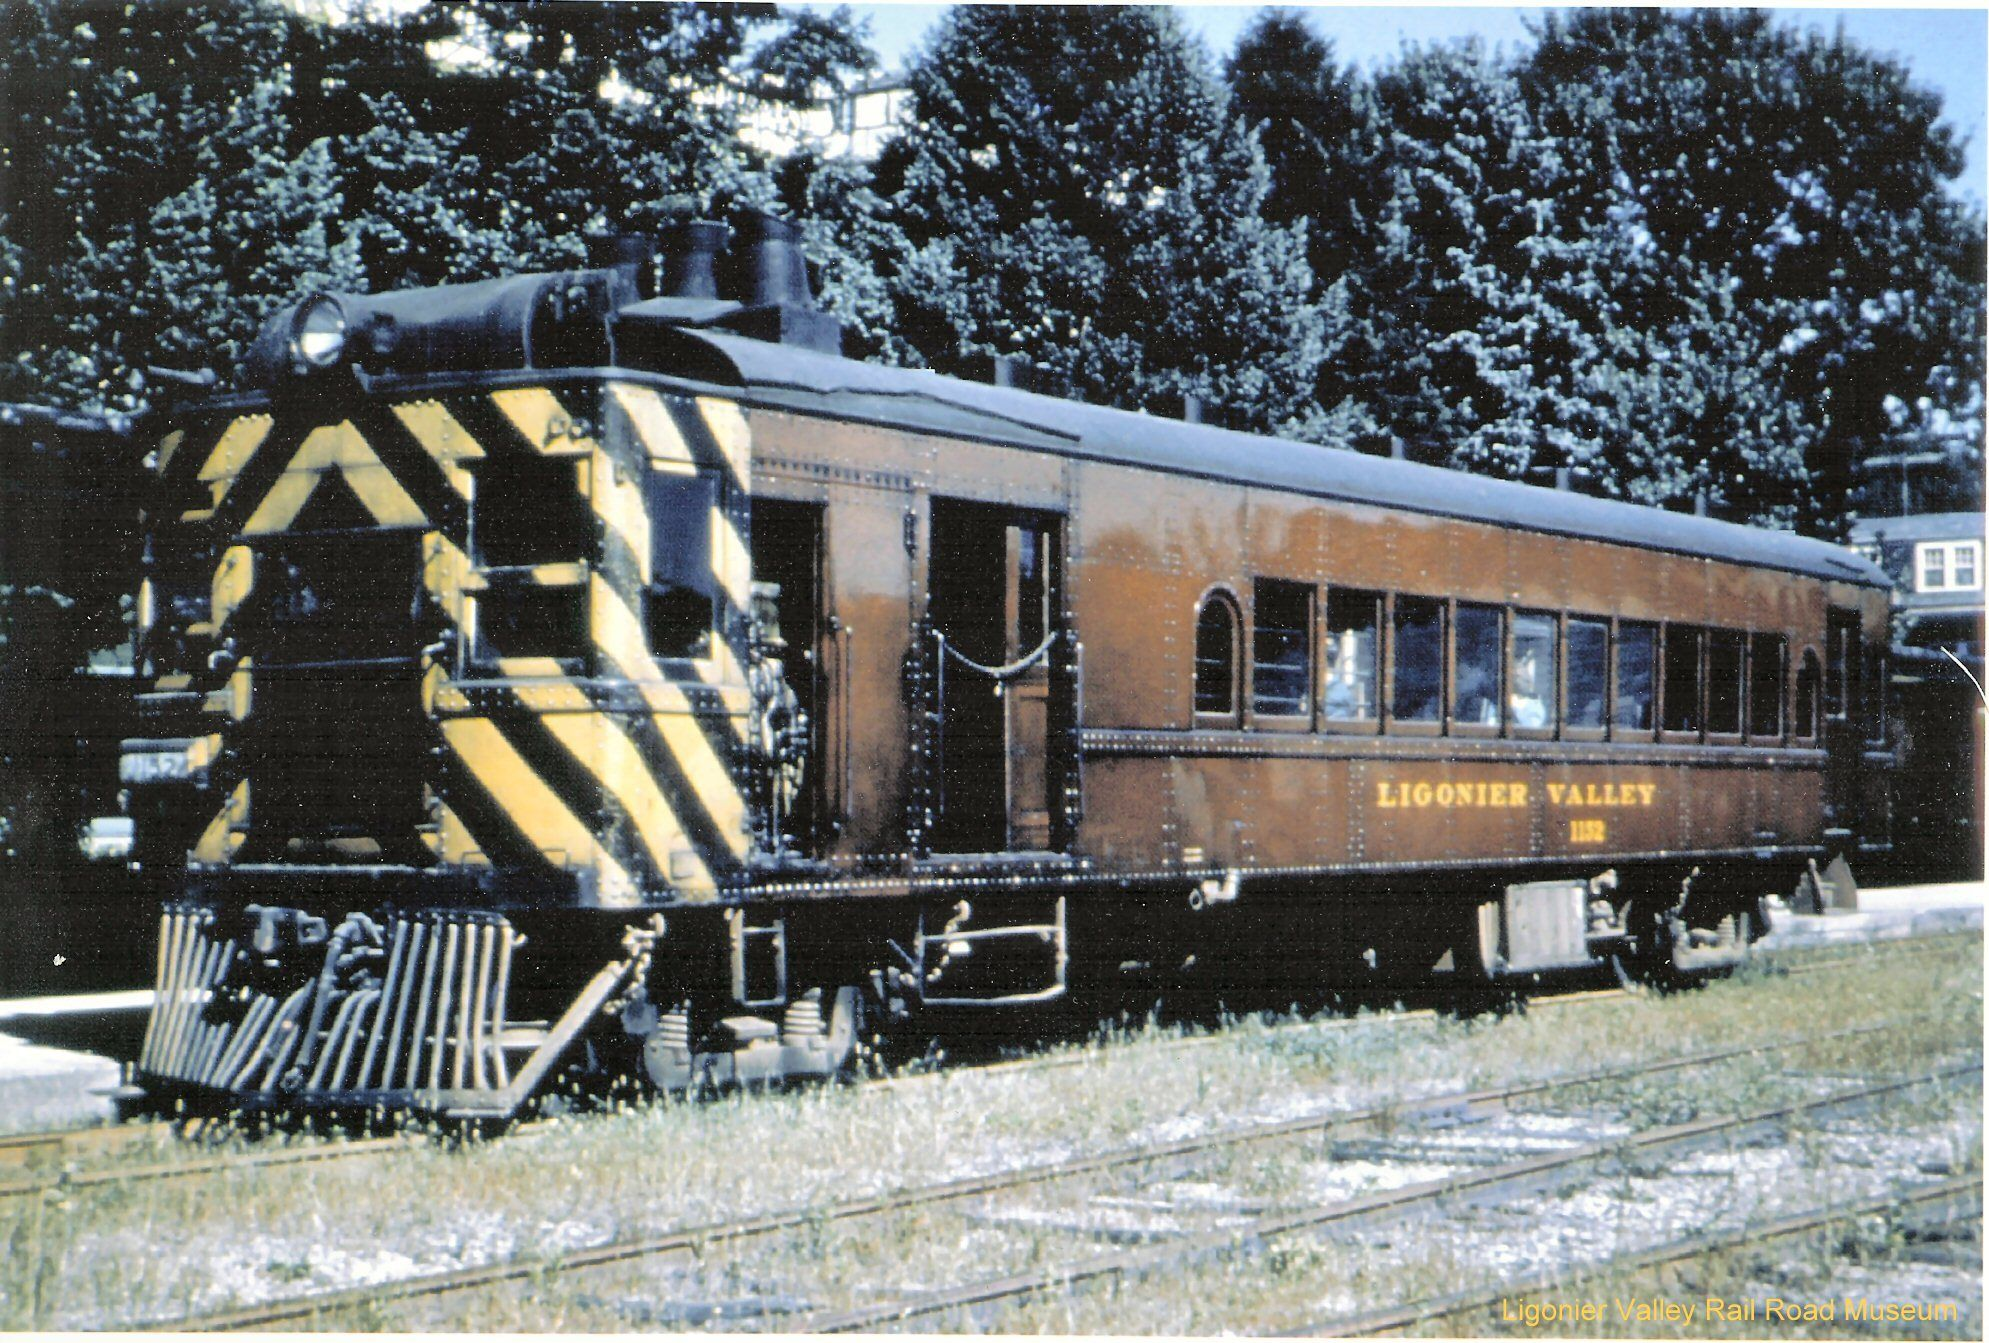 The Ligonier Valley Rr Emc Gas Electric Rail Car 1152 Was One Of Four Second Hand Rail Motor Cars They Owned Rail Car Gas And Electric Motor Car